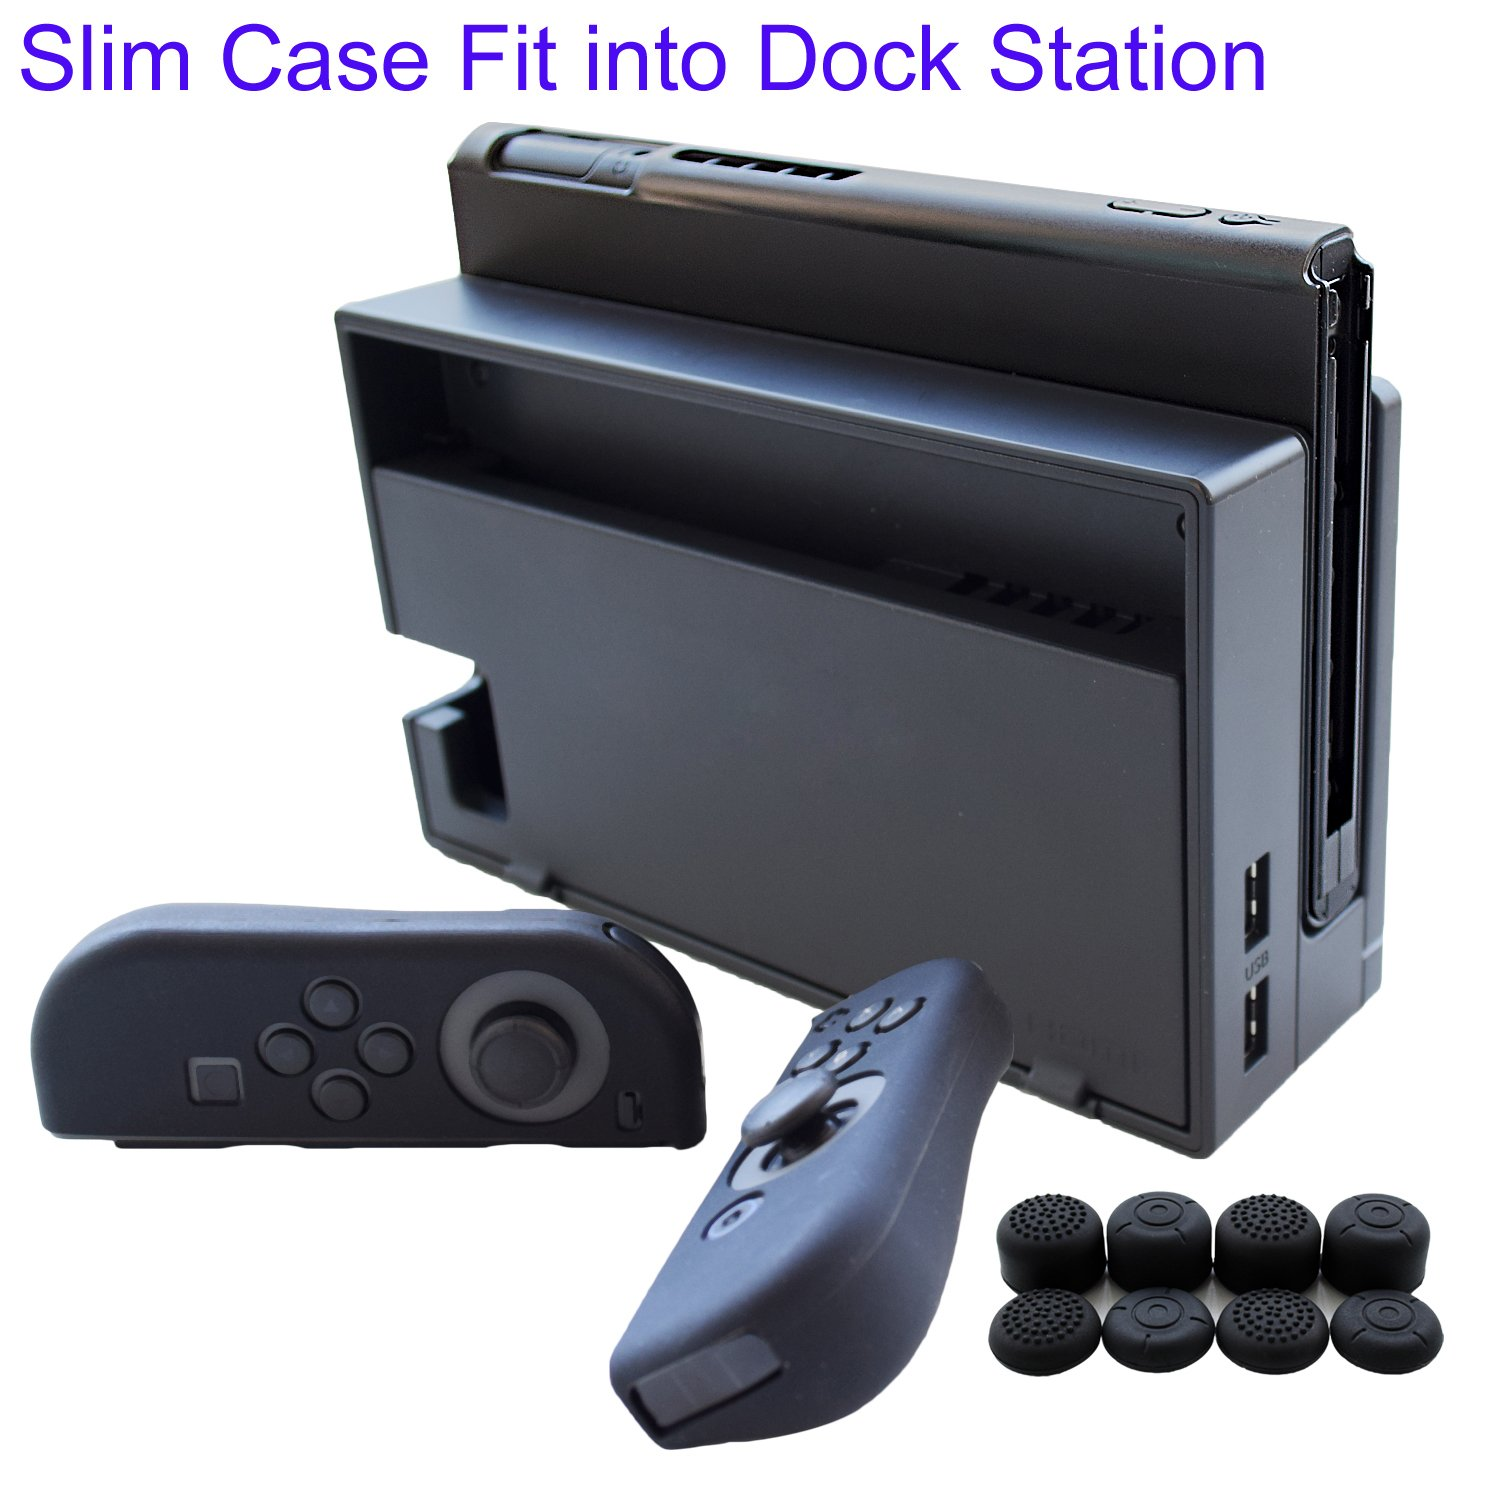 Hikfly 3in1 Ultra Slim Docked PC Cover Case for Nintendo Switch(Transparent Black) & Silicone Covers (Black) for Joy-Con Controllers with 8pcs Thumb ...